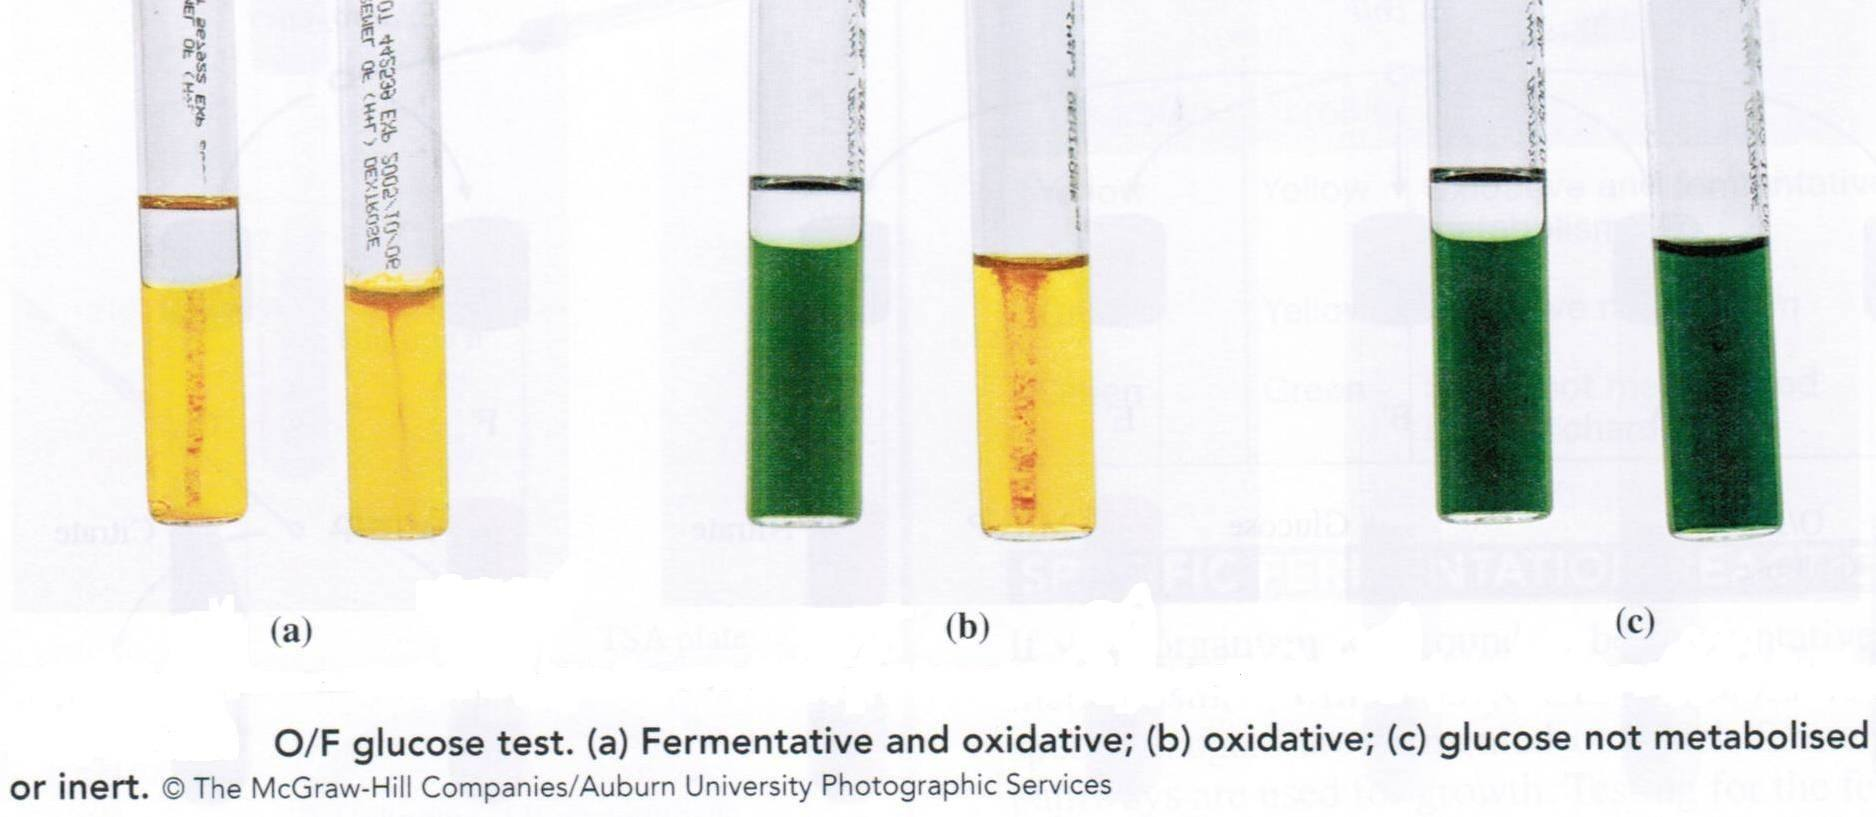 Oxidative fermentative (OF) test:  Principle, procedure and results